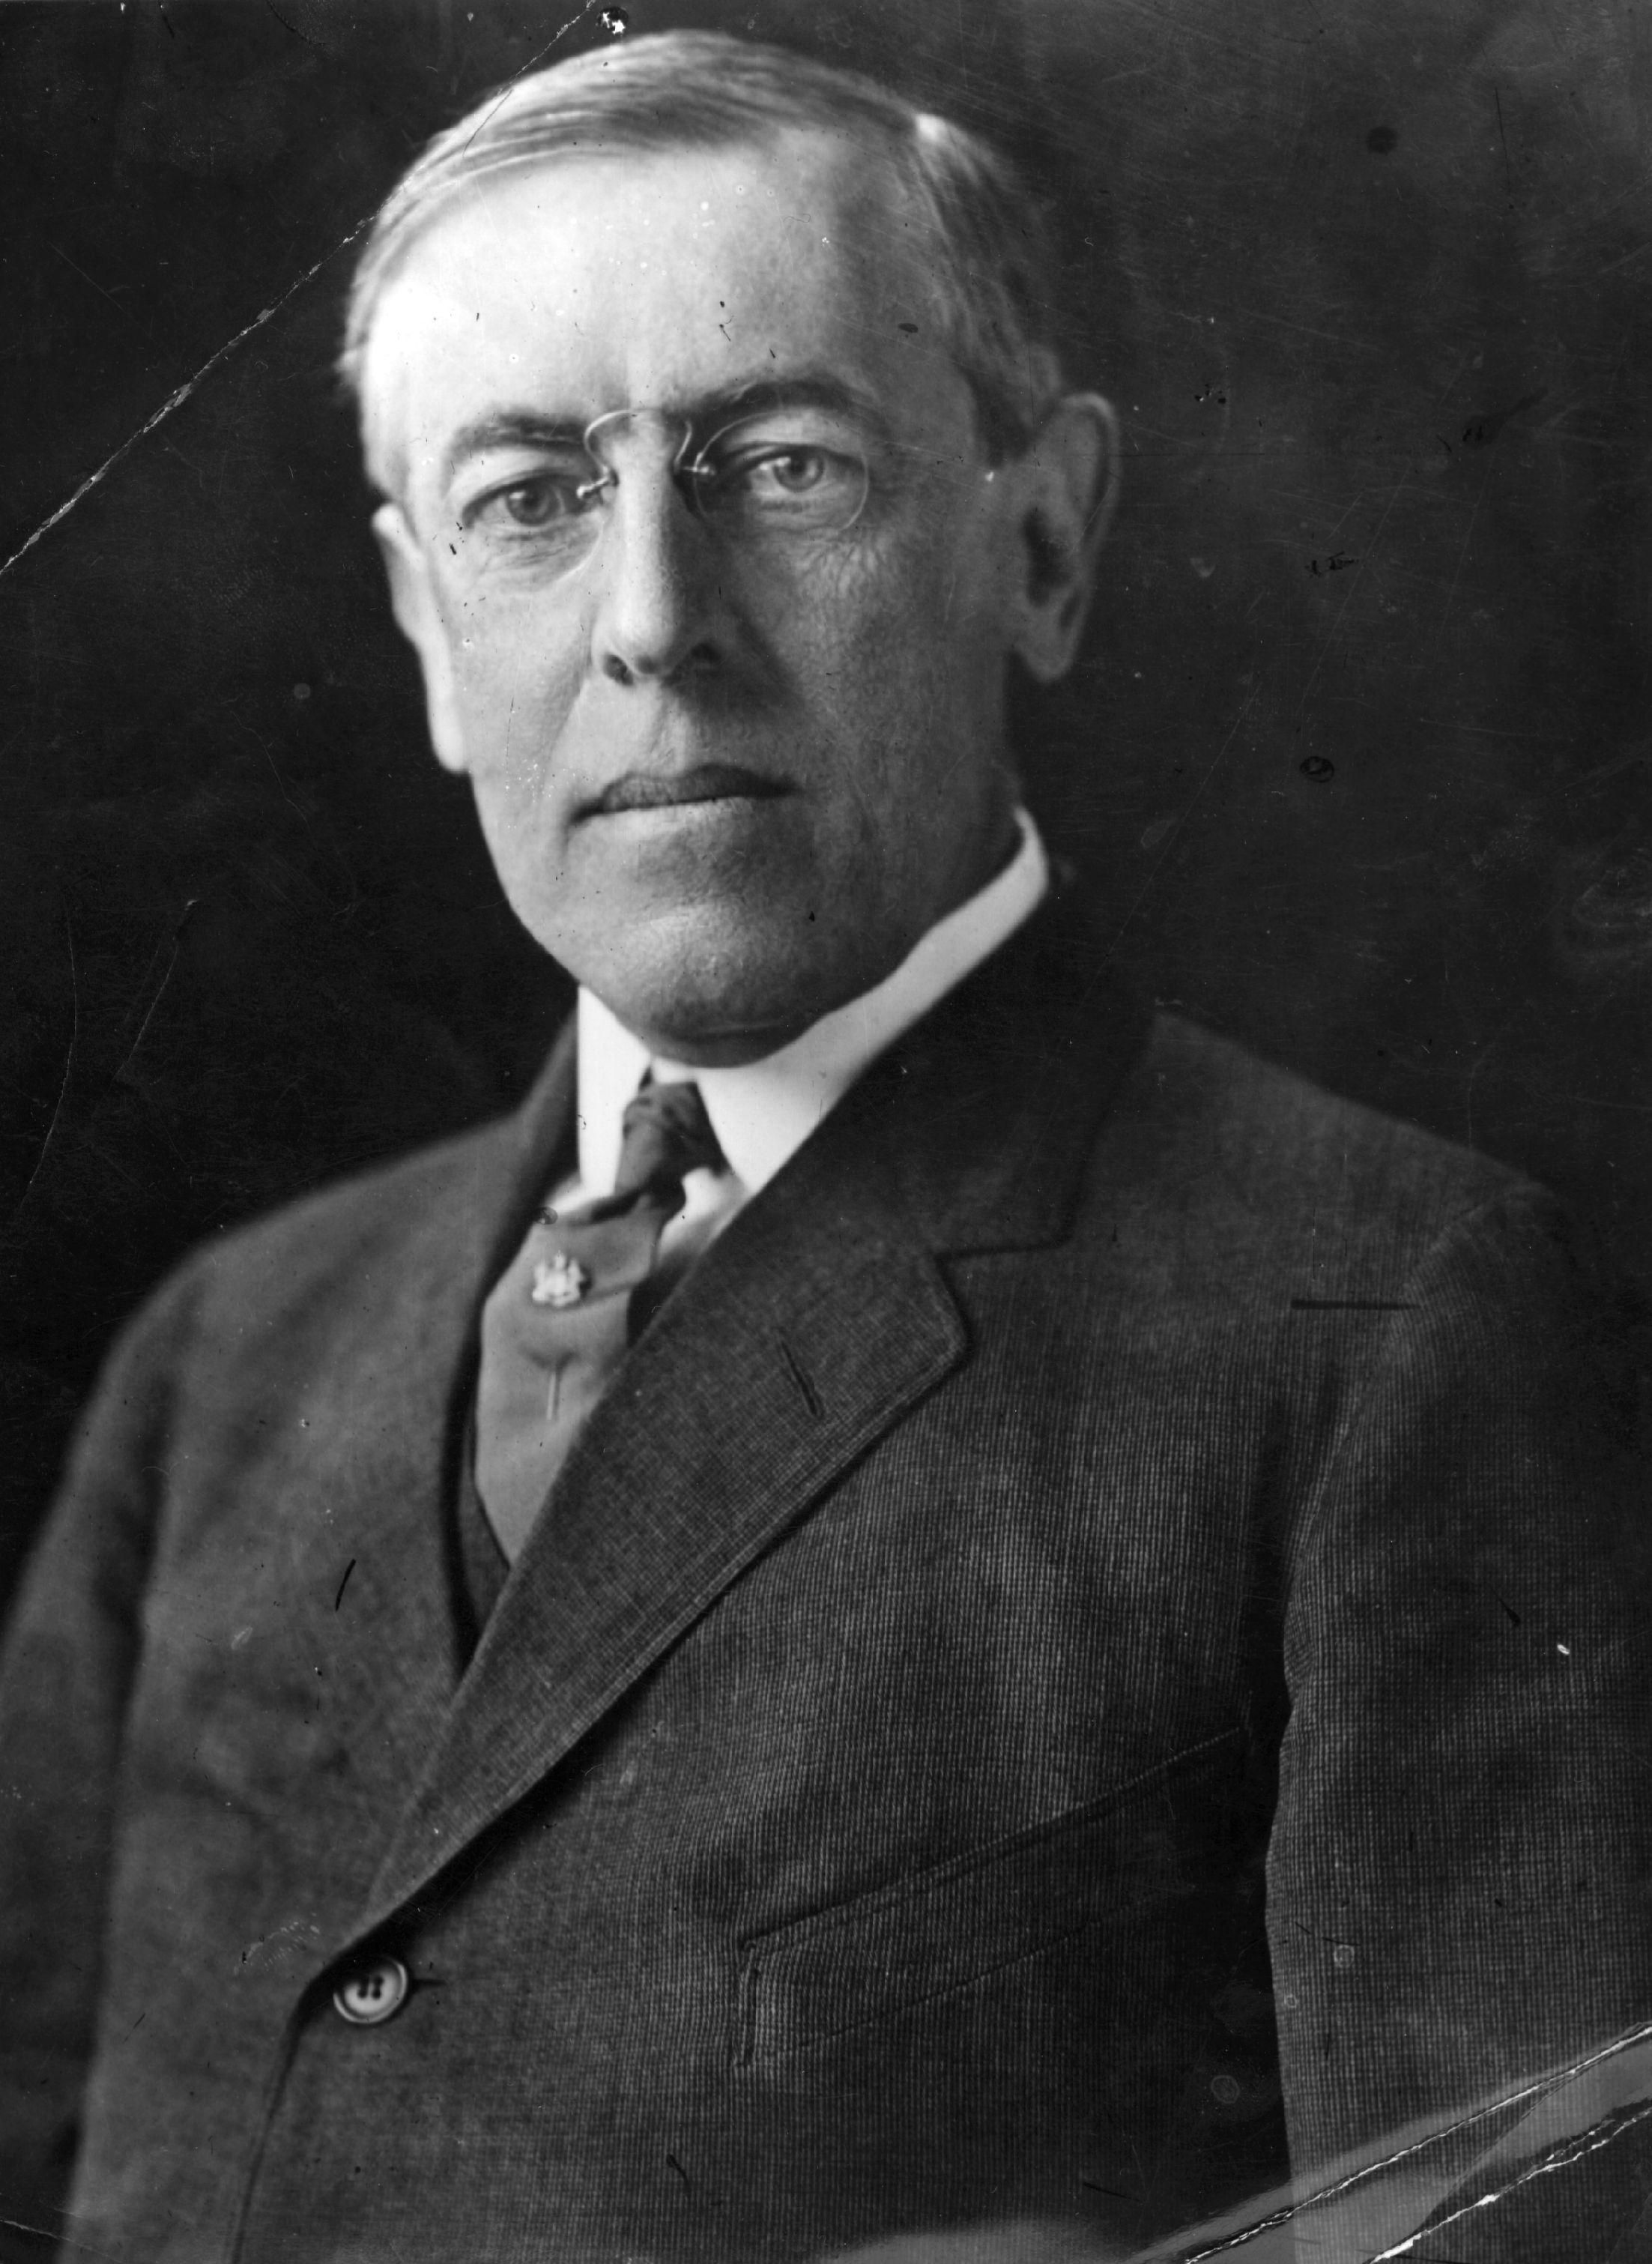 biography of woodrow wilson the 28th president of the united states of america